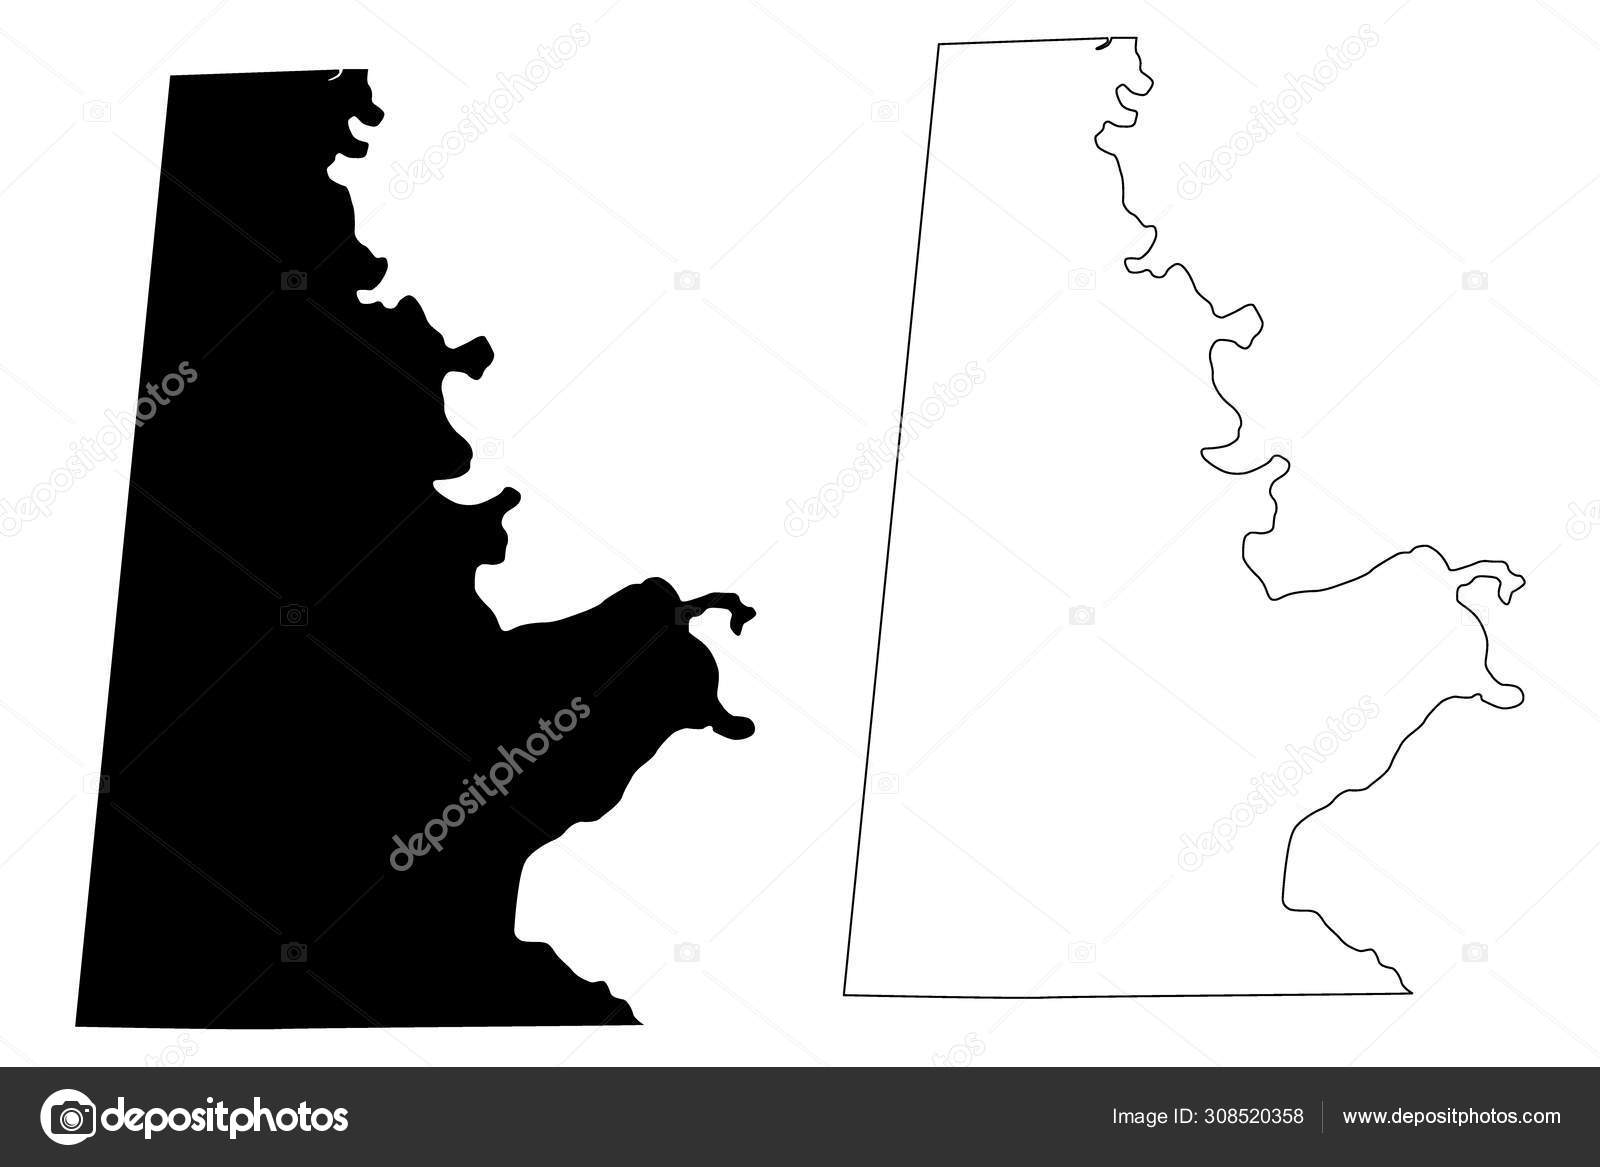 Sumter County, Alabama (Counties in Alabama, United States ...